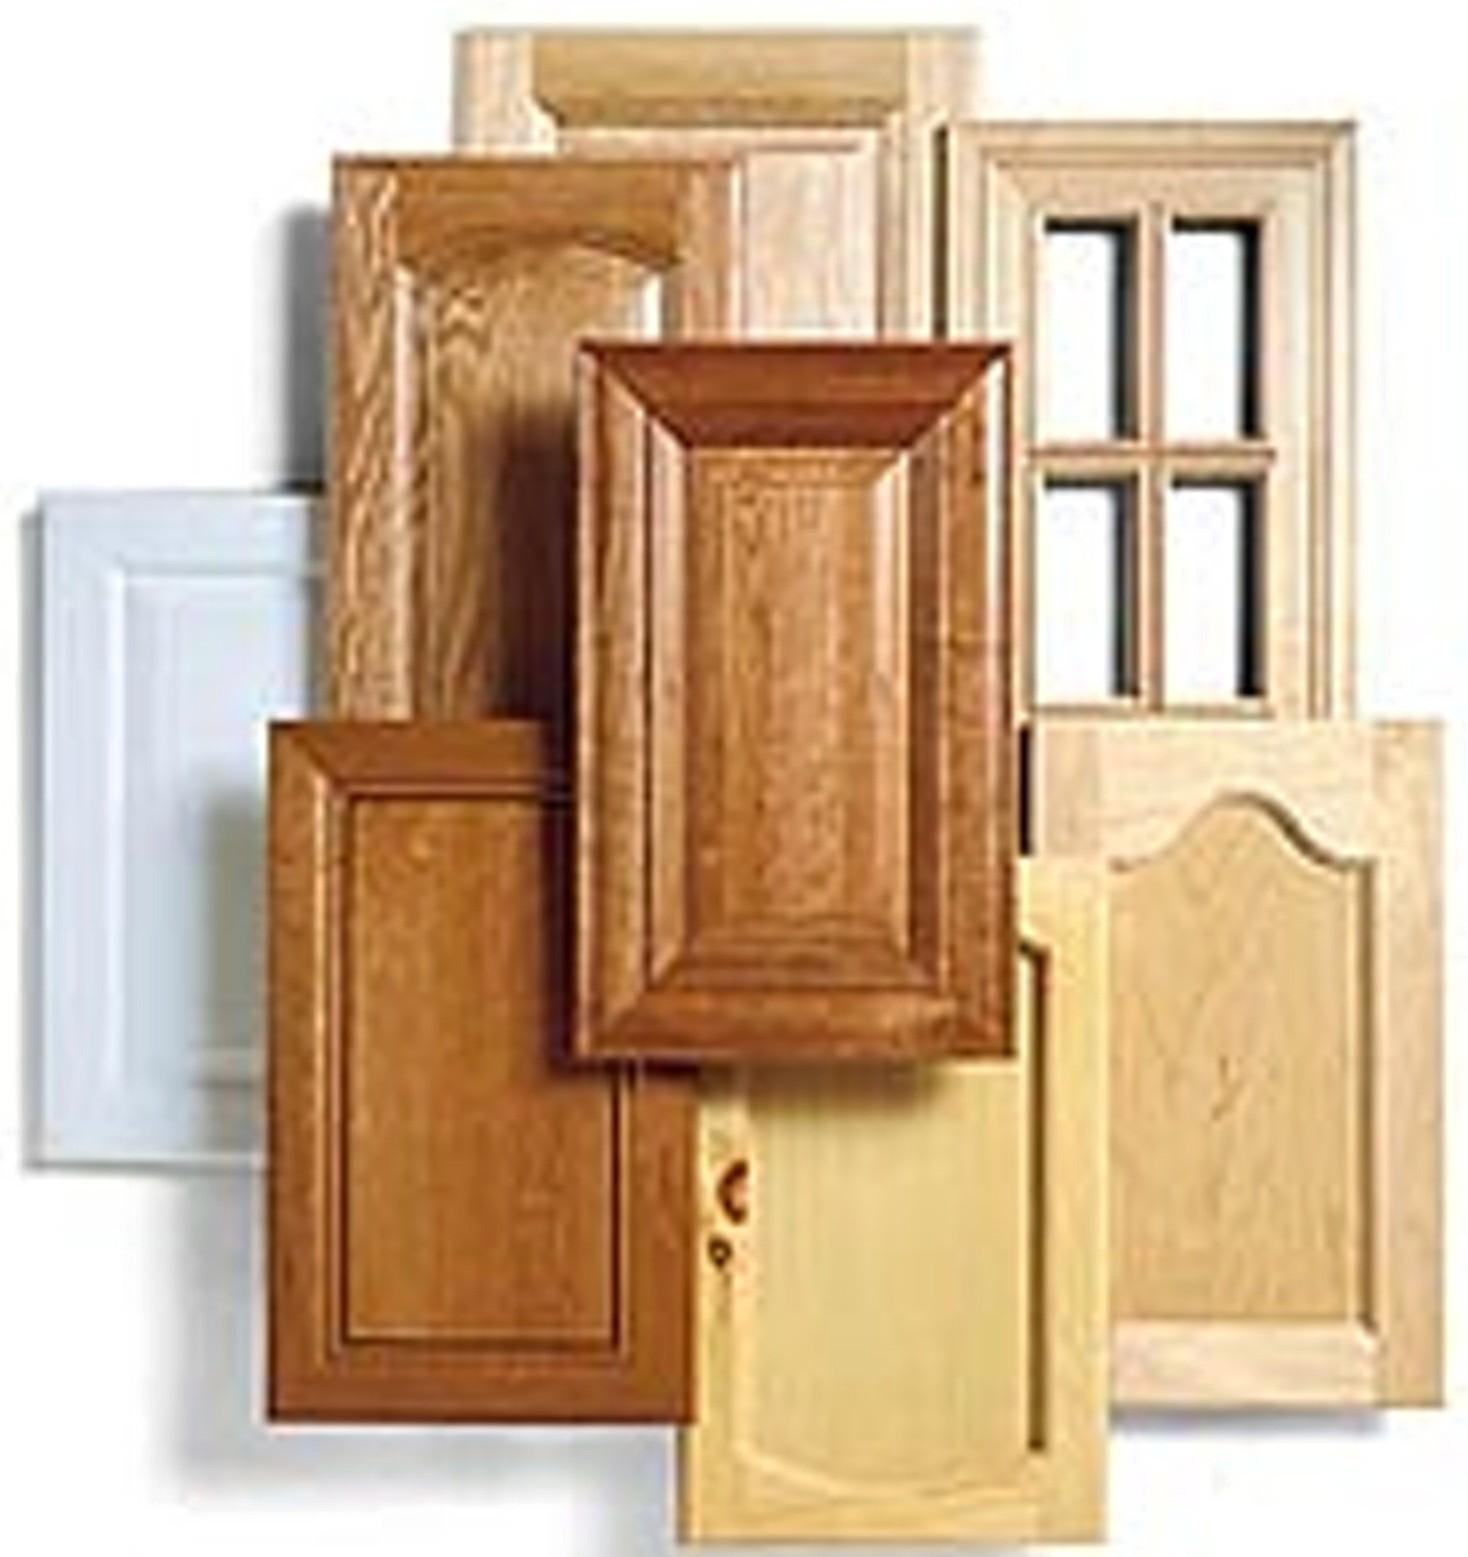 tomscabinets replacement kitchen cabinet doors Decore Doors Cropped bytes